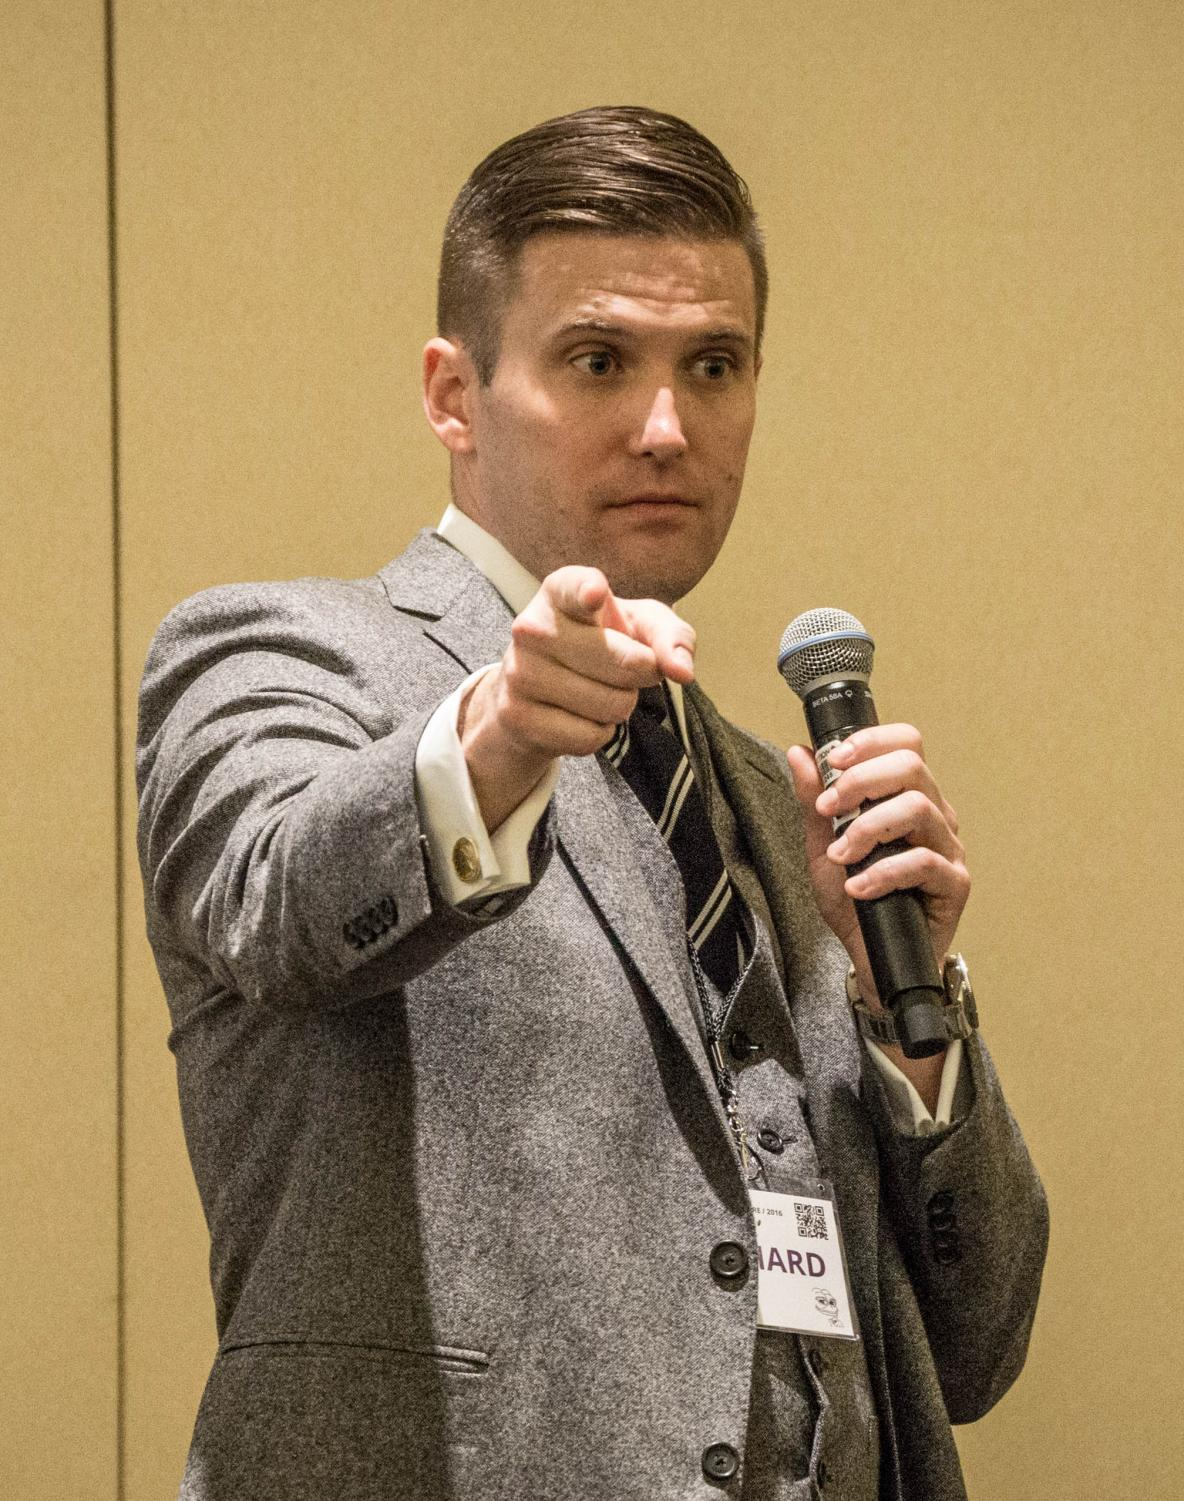 White nationalist Richard Spencer delivers a speech in 2016.